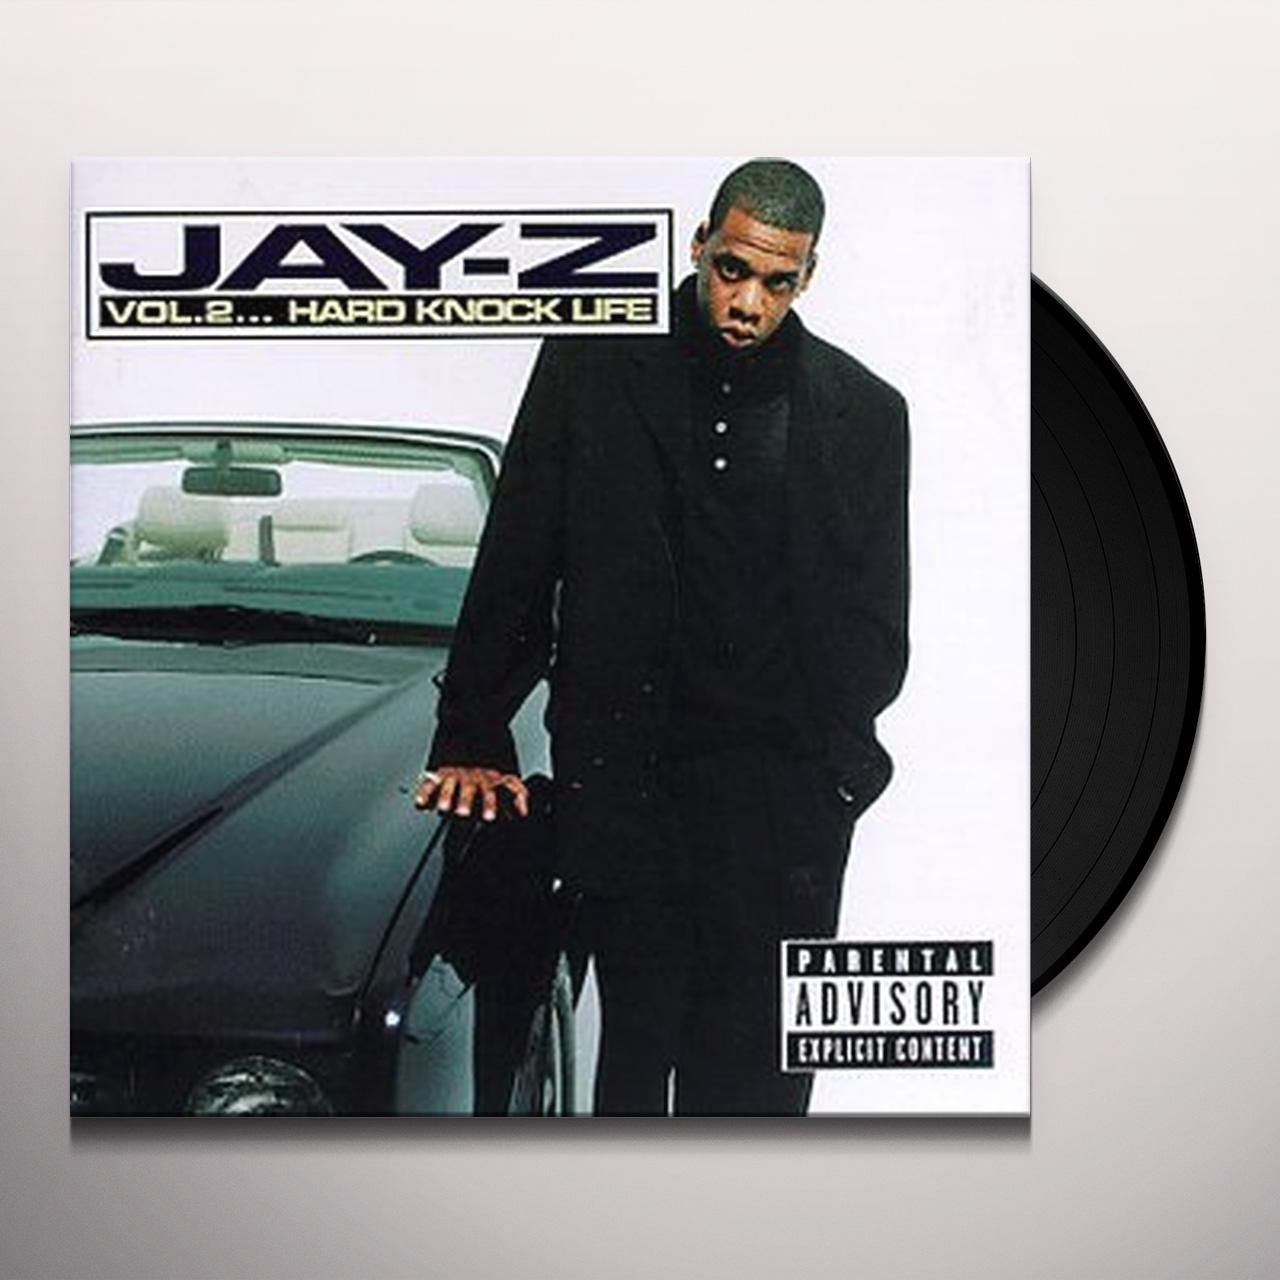 Jay z volume 2 hard knock life vinyl record hover to zoom malvernweather Choice Image